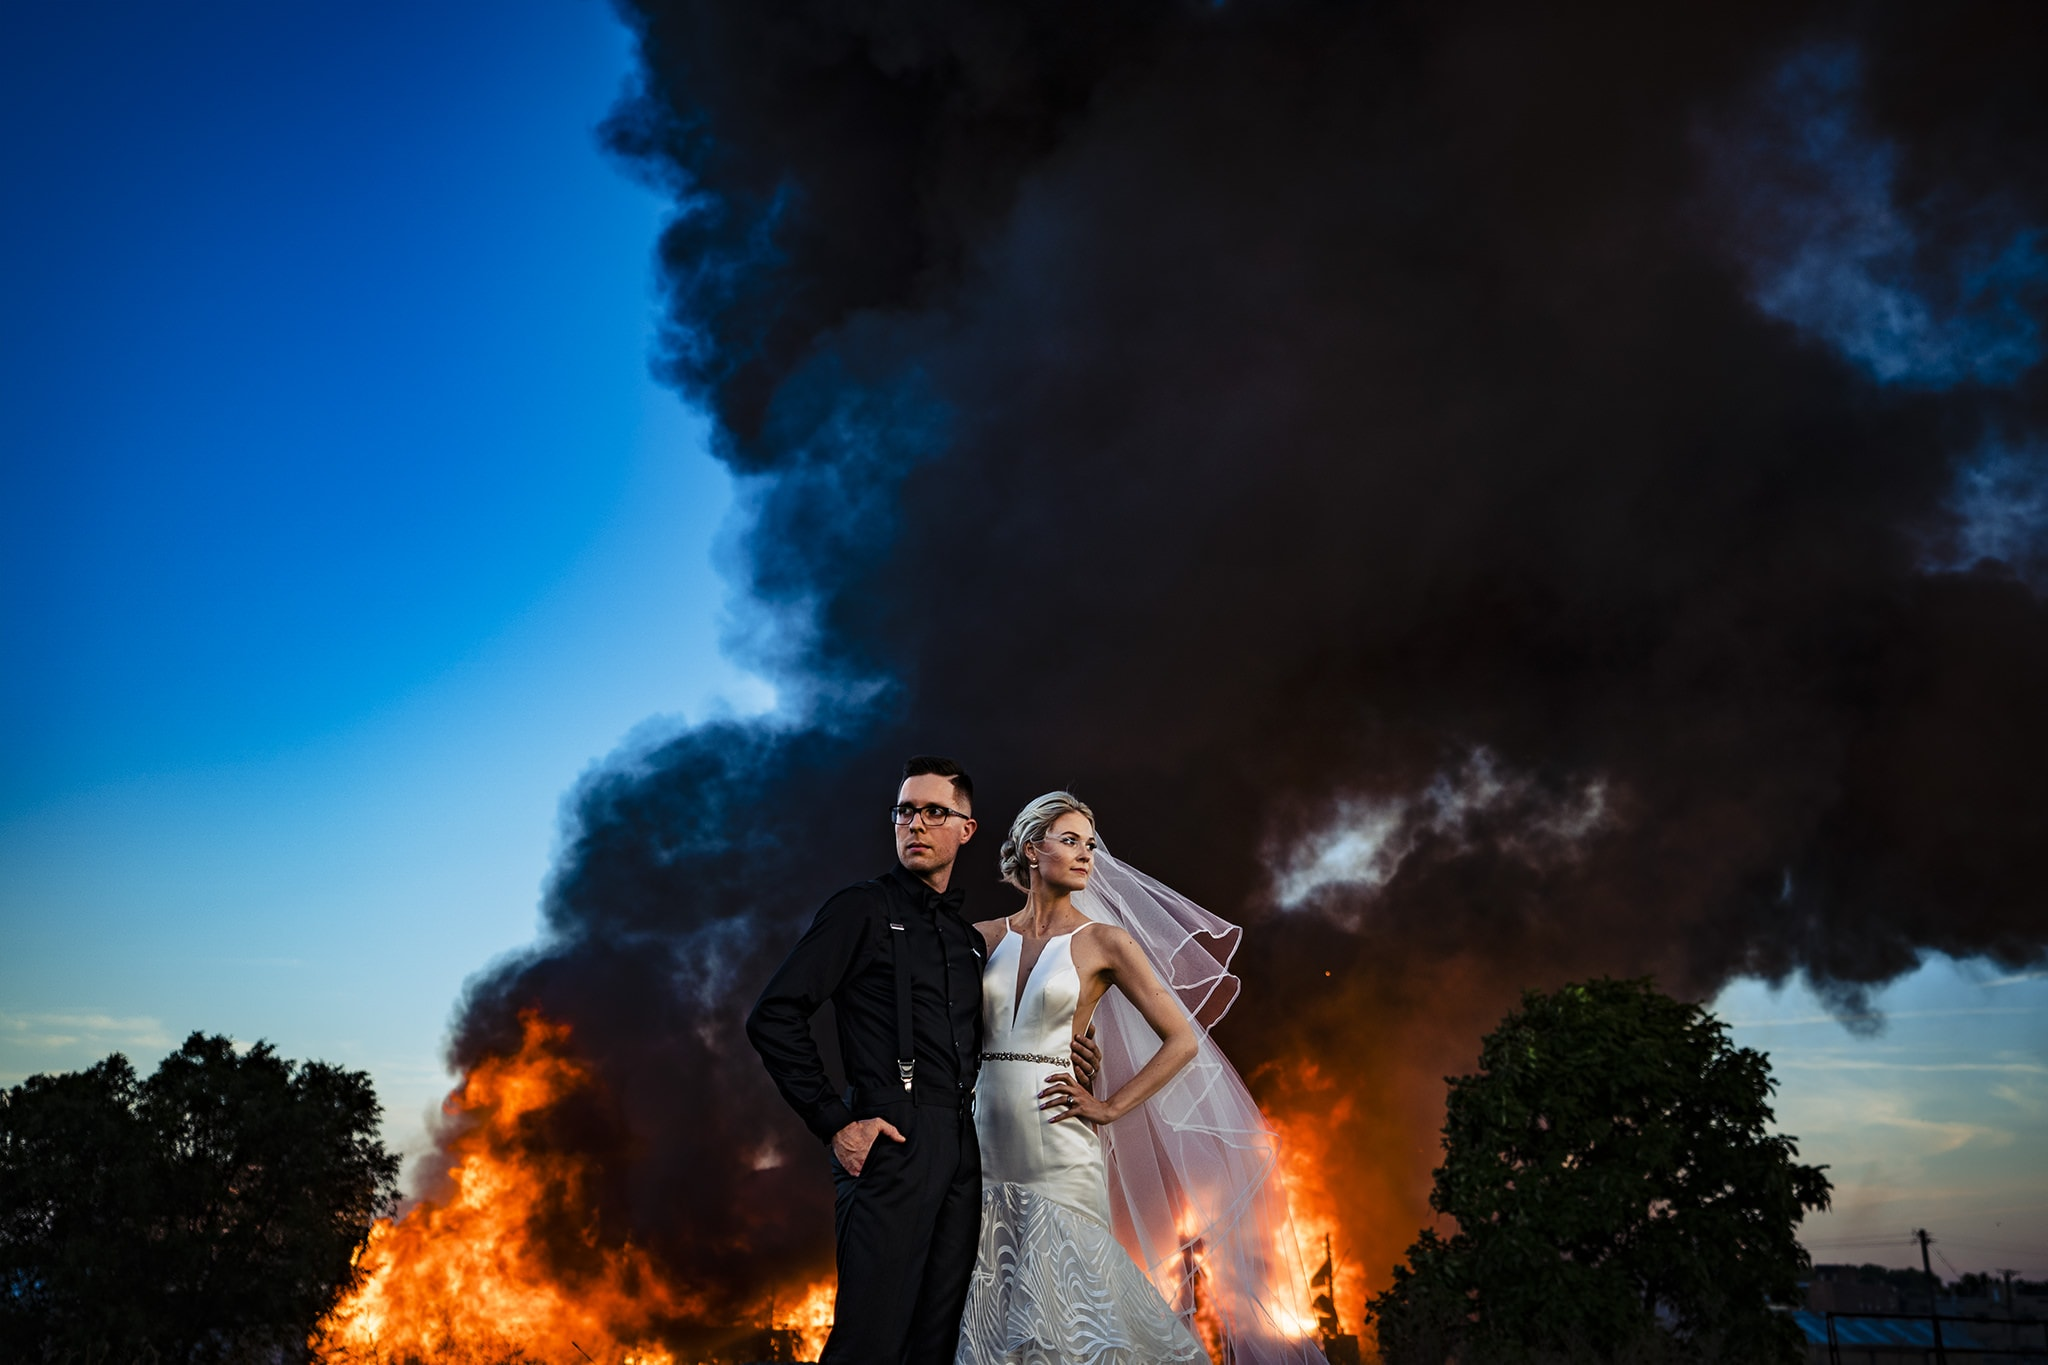 Fire Wedding Photo in Dayton